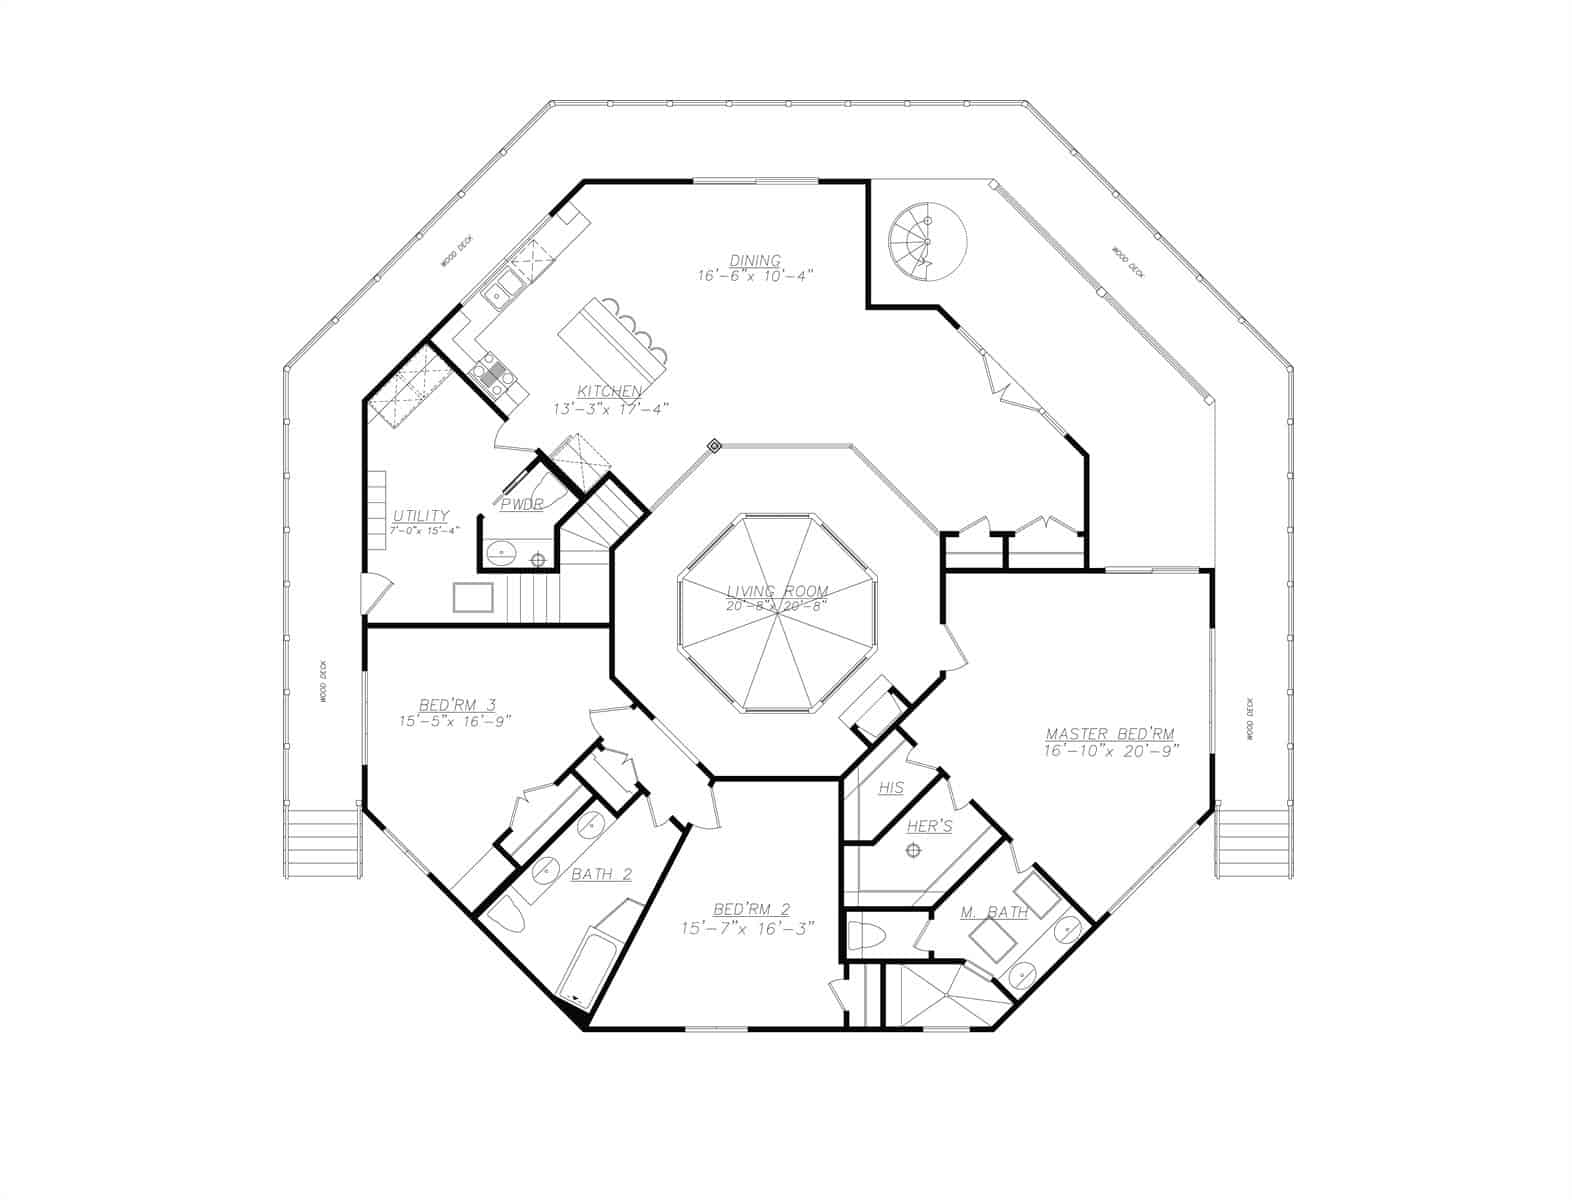 Main level floor plan of a two-story 3-bedroom modern octagon style home with living room, kitchen, dining area, utility room, three bedrooms, and a wraparound deck.